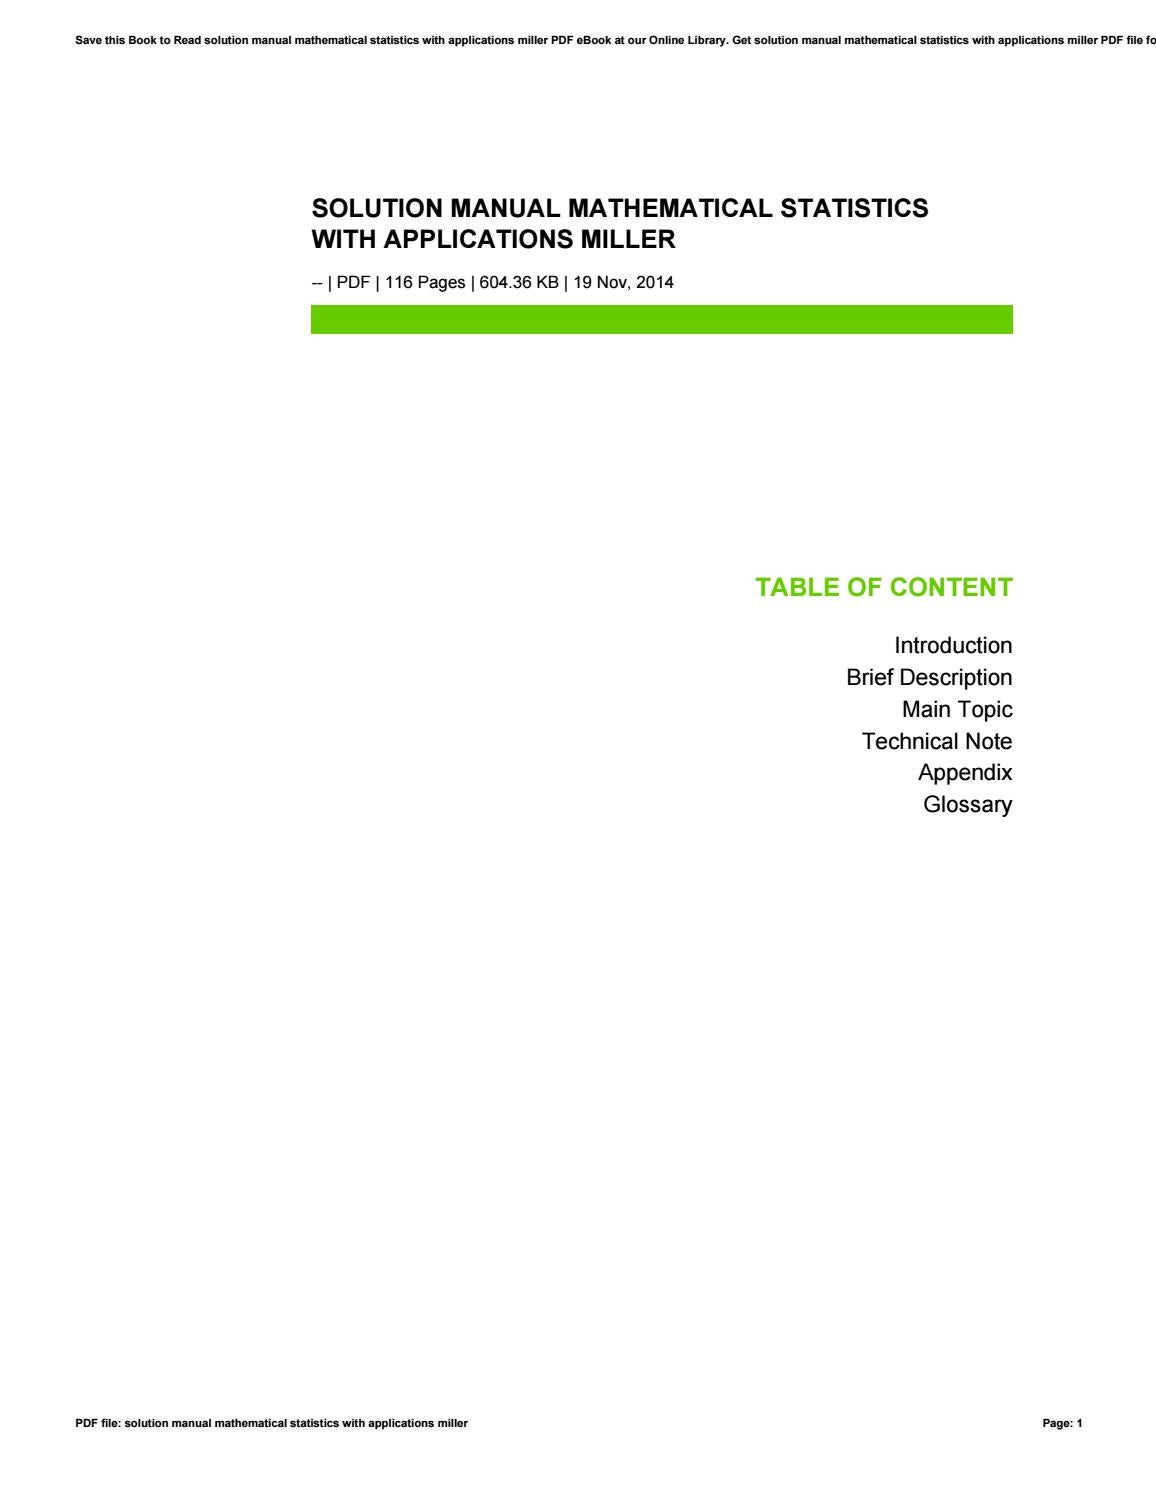 Solution manual mathematical statistics with applications miller by  tm2mail75 - issuu